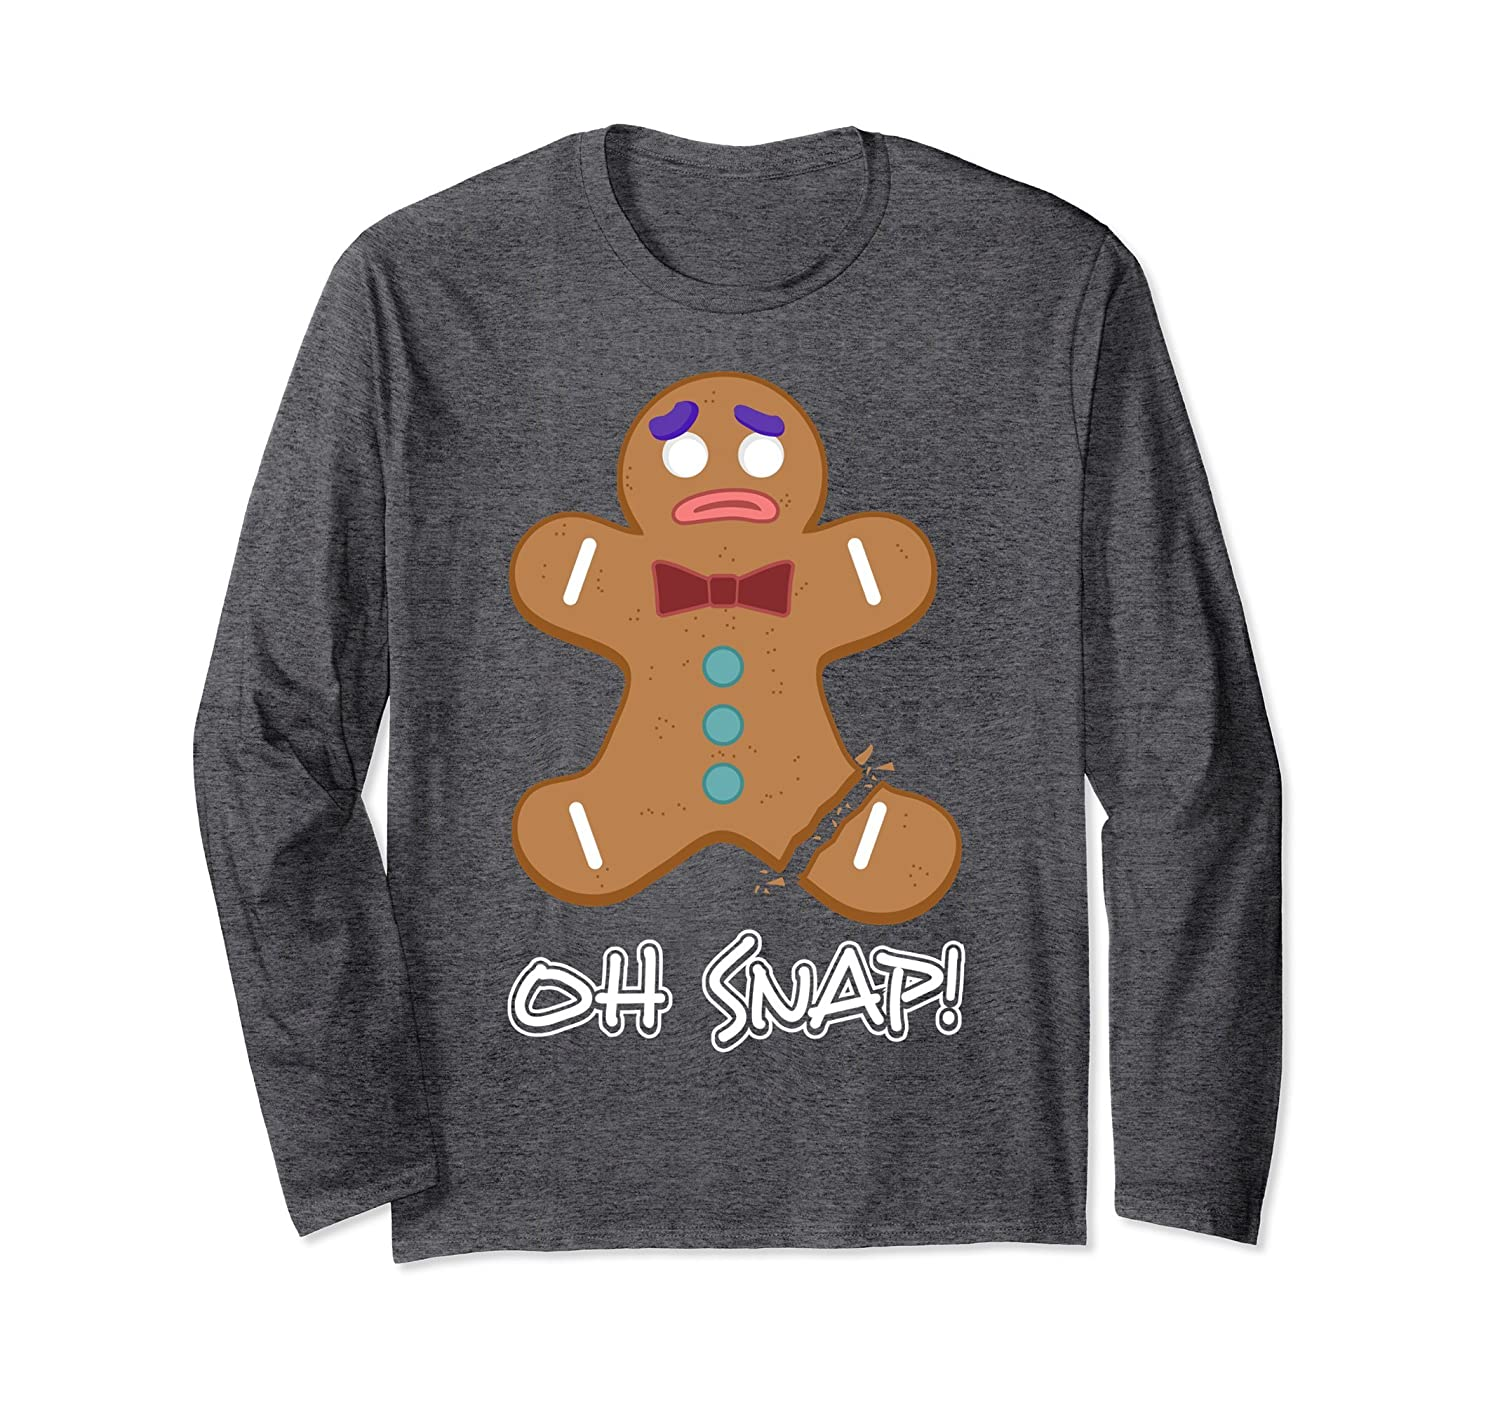 Oh Snap Long Sleeve Shirt Gingerbread Man Christmas T Shirt Alottee